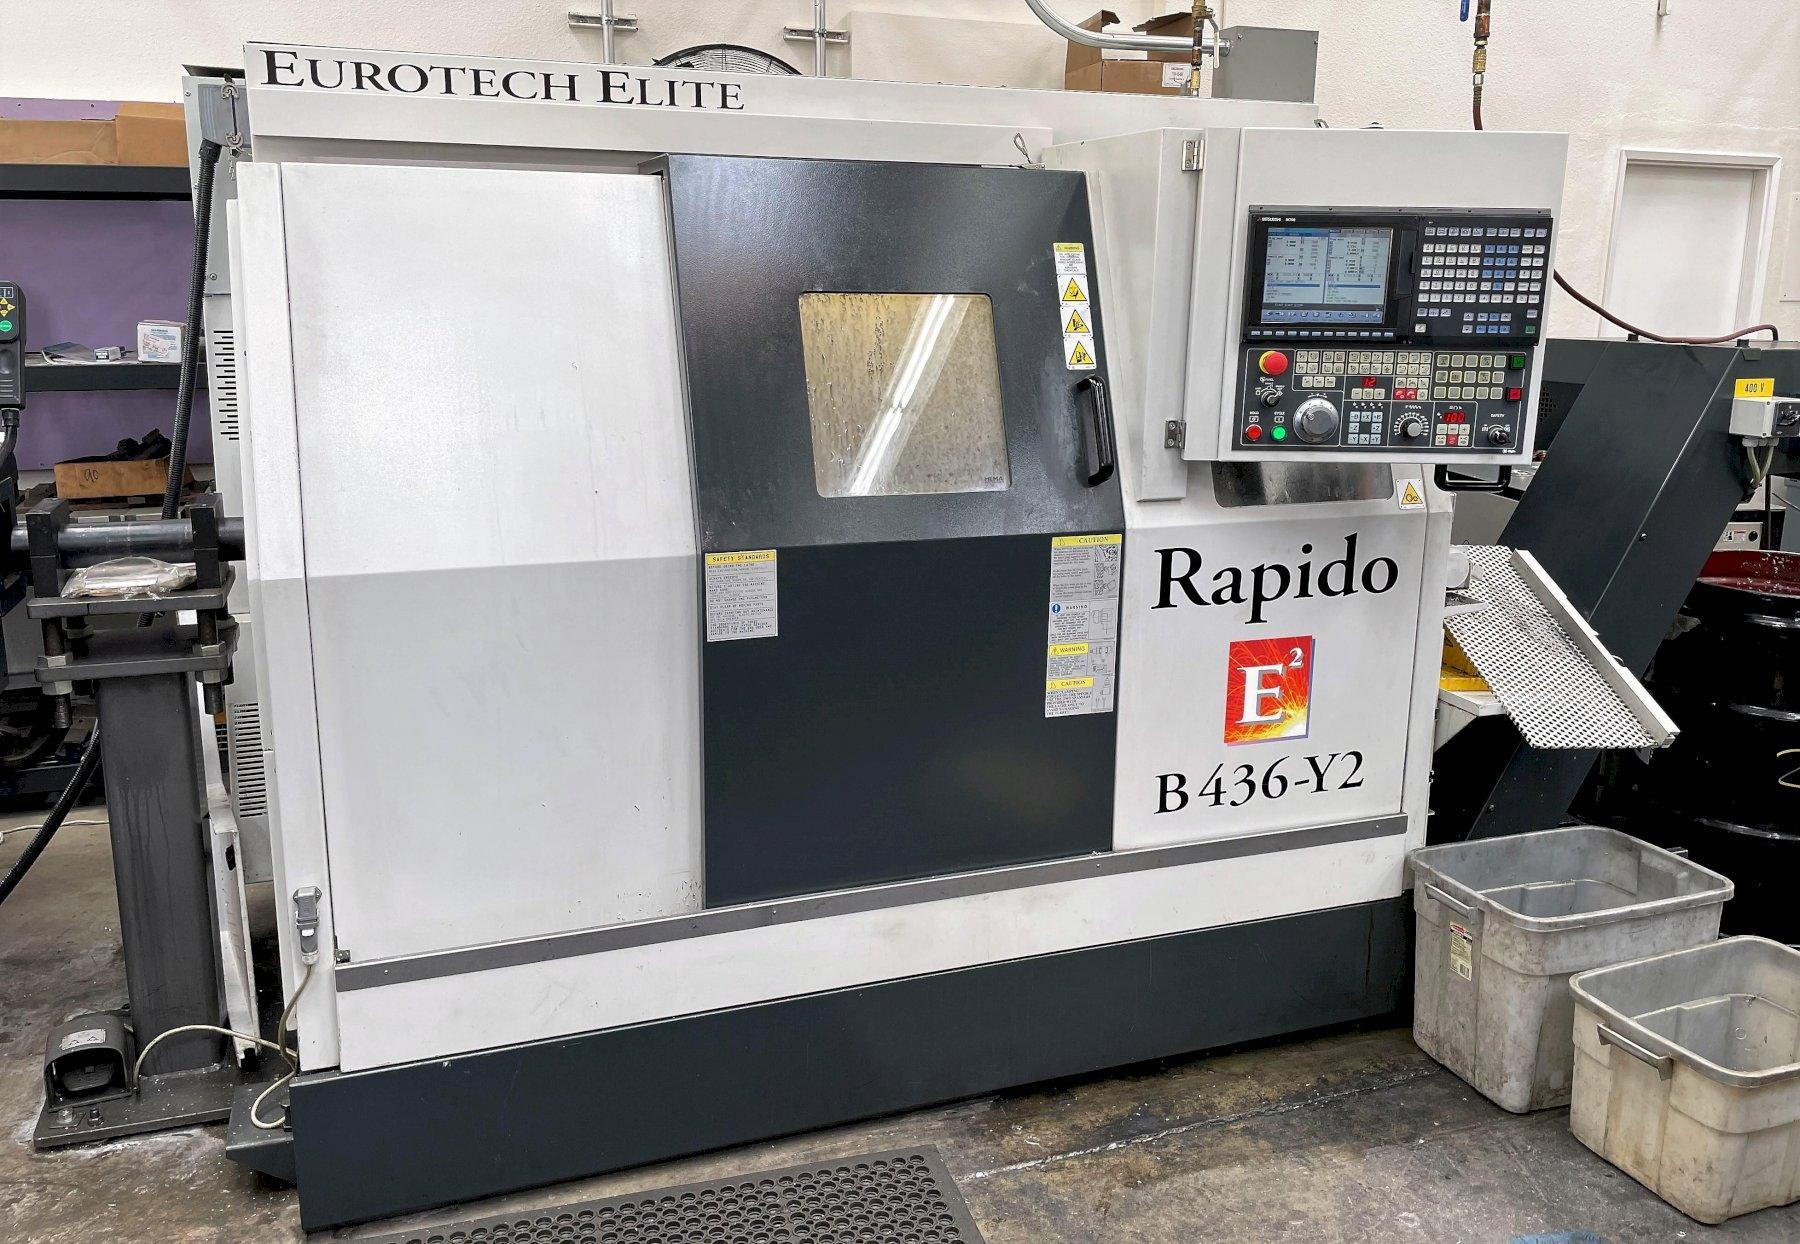 Eurotech Rapido B446SY2 CNC Turning Center 2018 with: Two Spindles and Two Turrets, Y-Axis on Both Turrets, HPC, Parts Catcher, Chip Conveyor, and Bar Feeder.